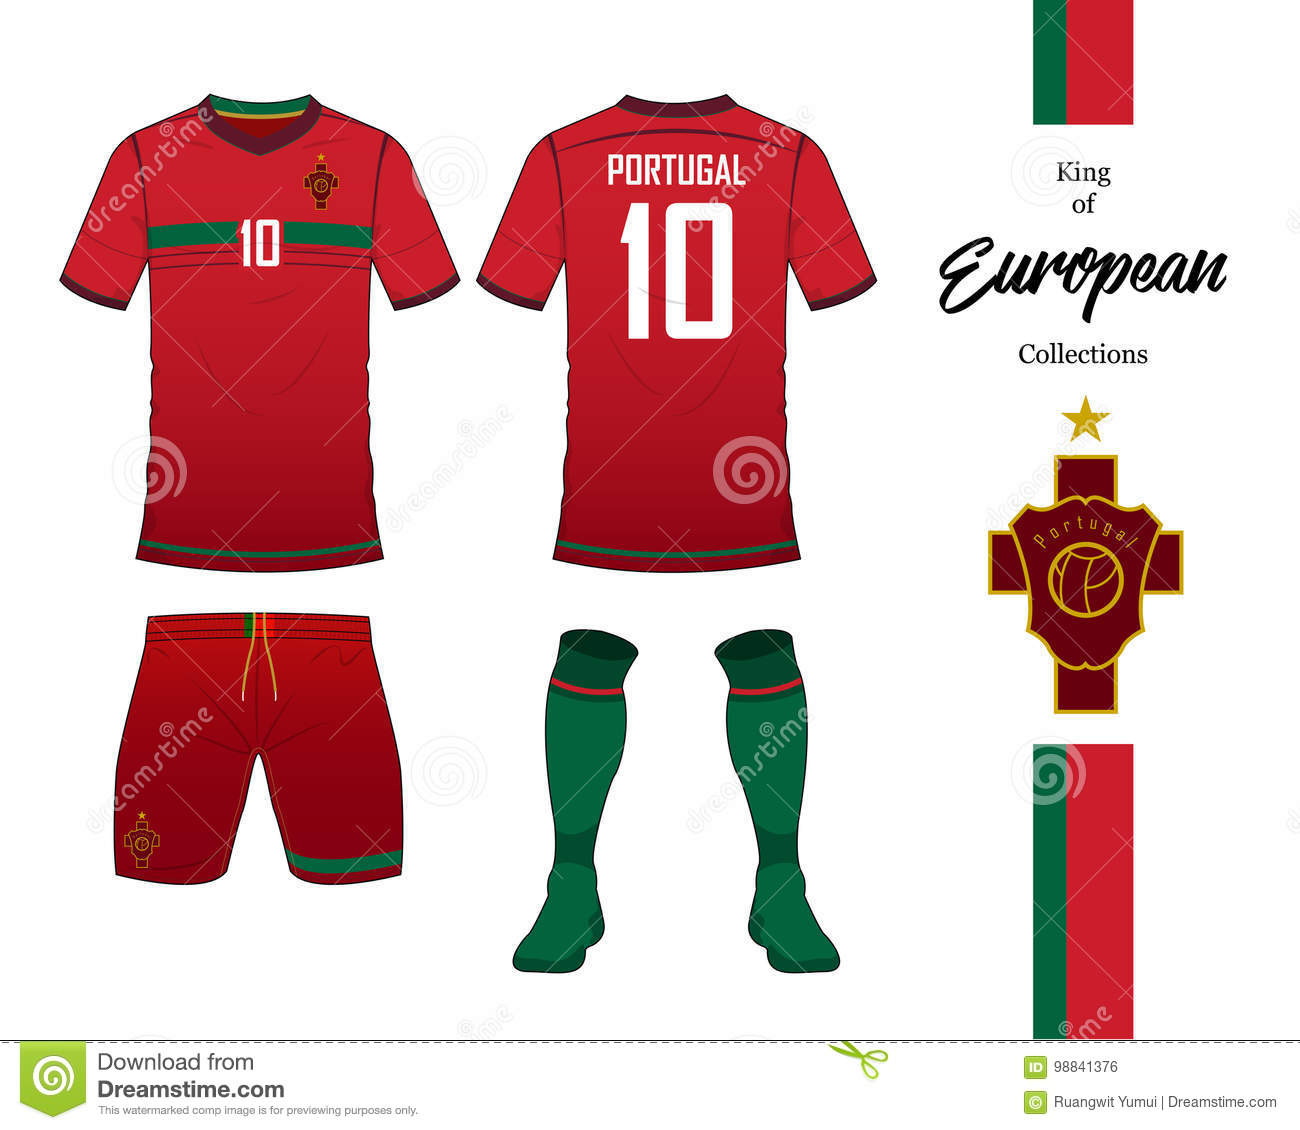 794995fce Portugal football national team uniform. Soccer jersey or football kit  template. Football logo in flat design. Front and rear view soccer t-shirt  mock up.